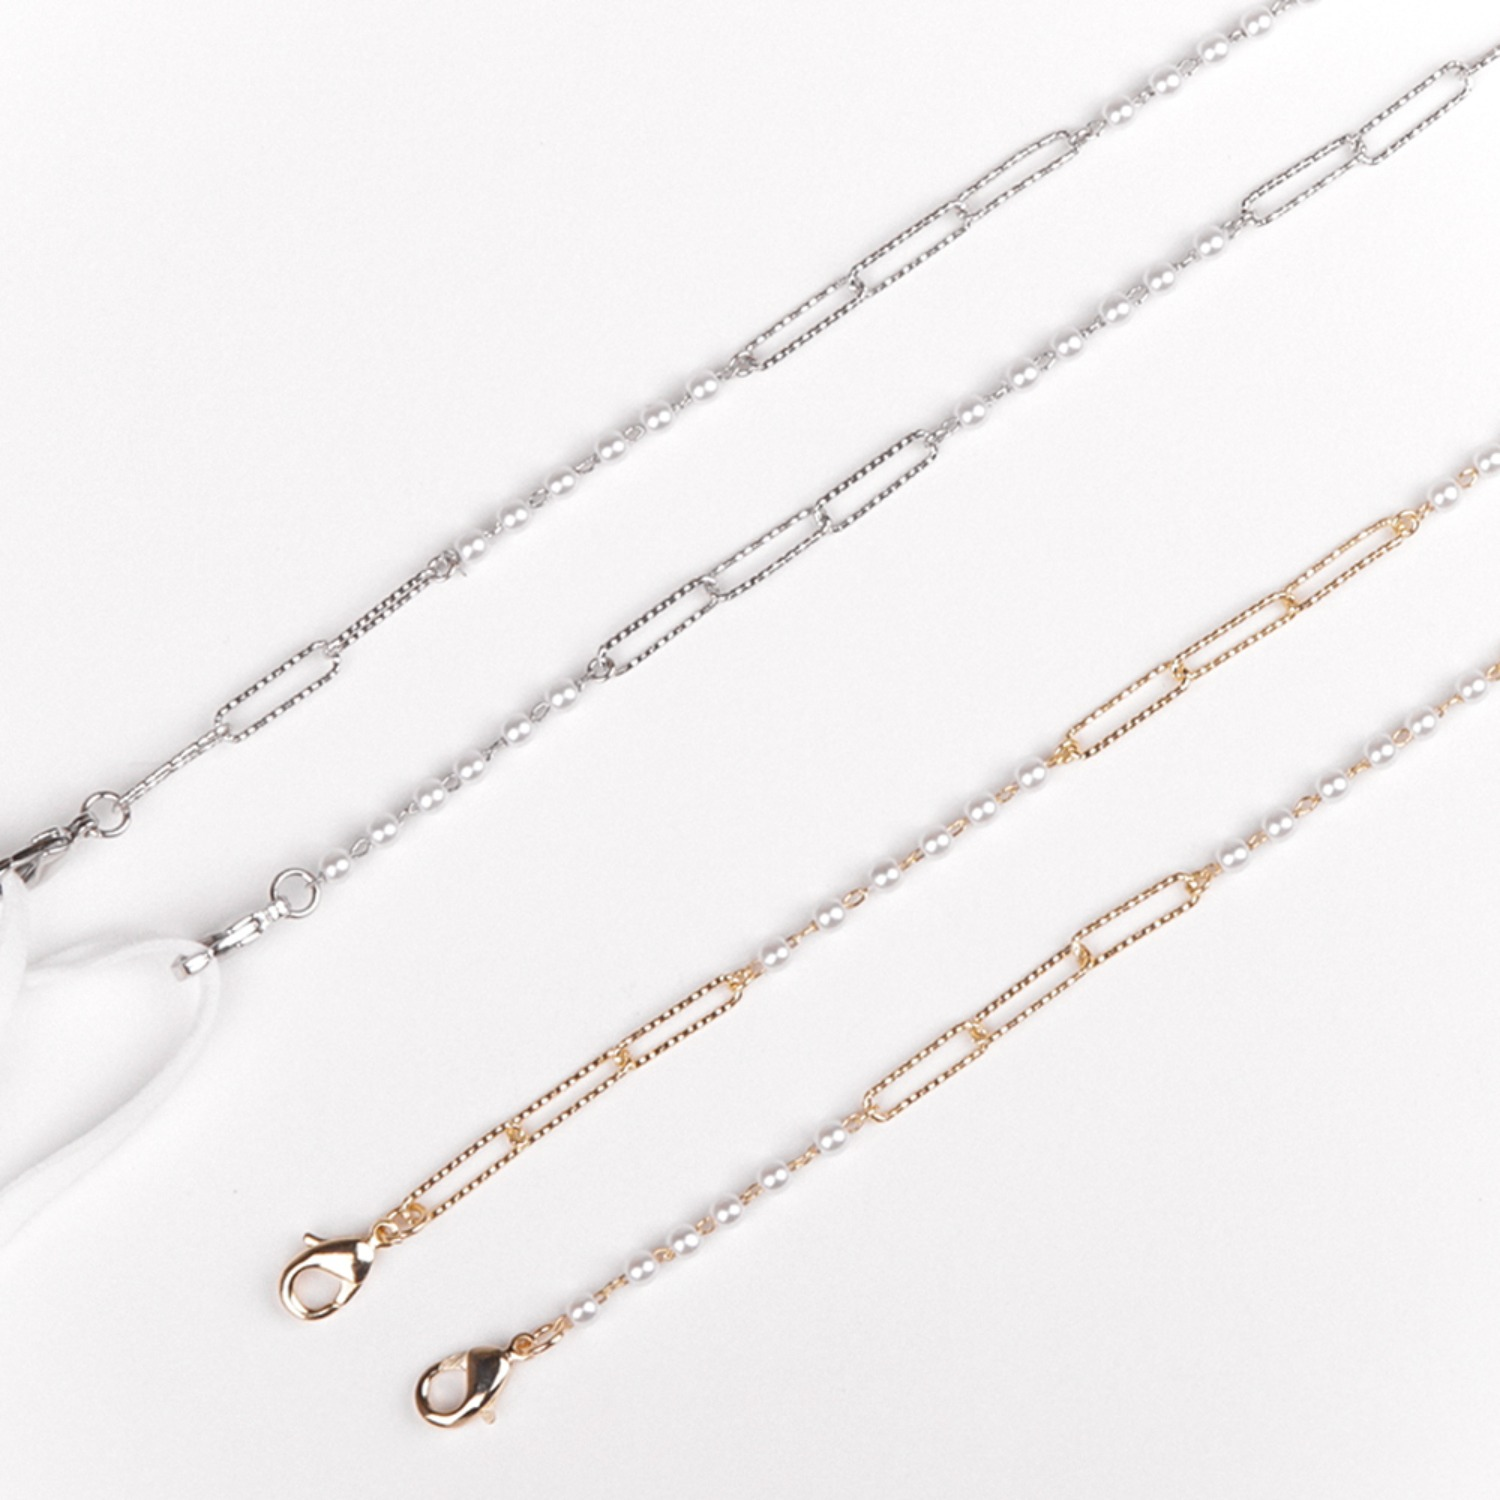 M.Edge pearl chain _ 2 color (silver/gold)